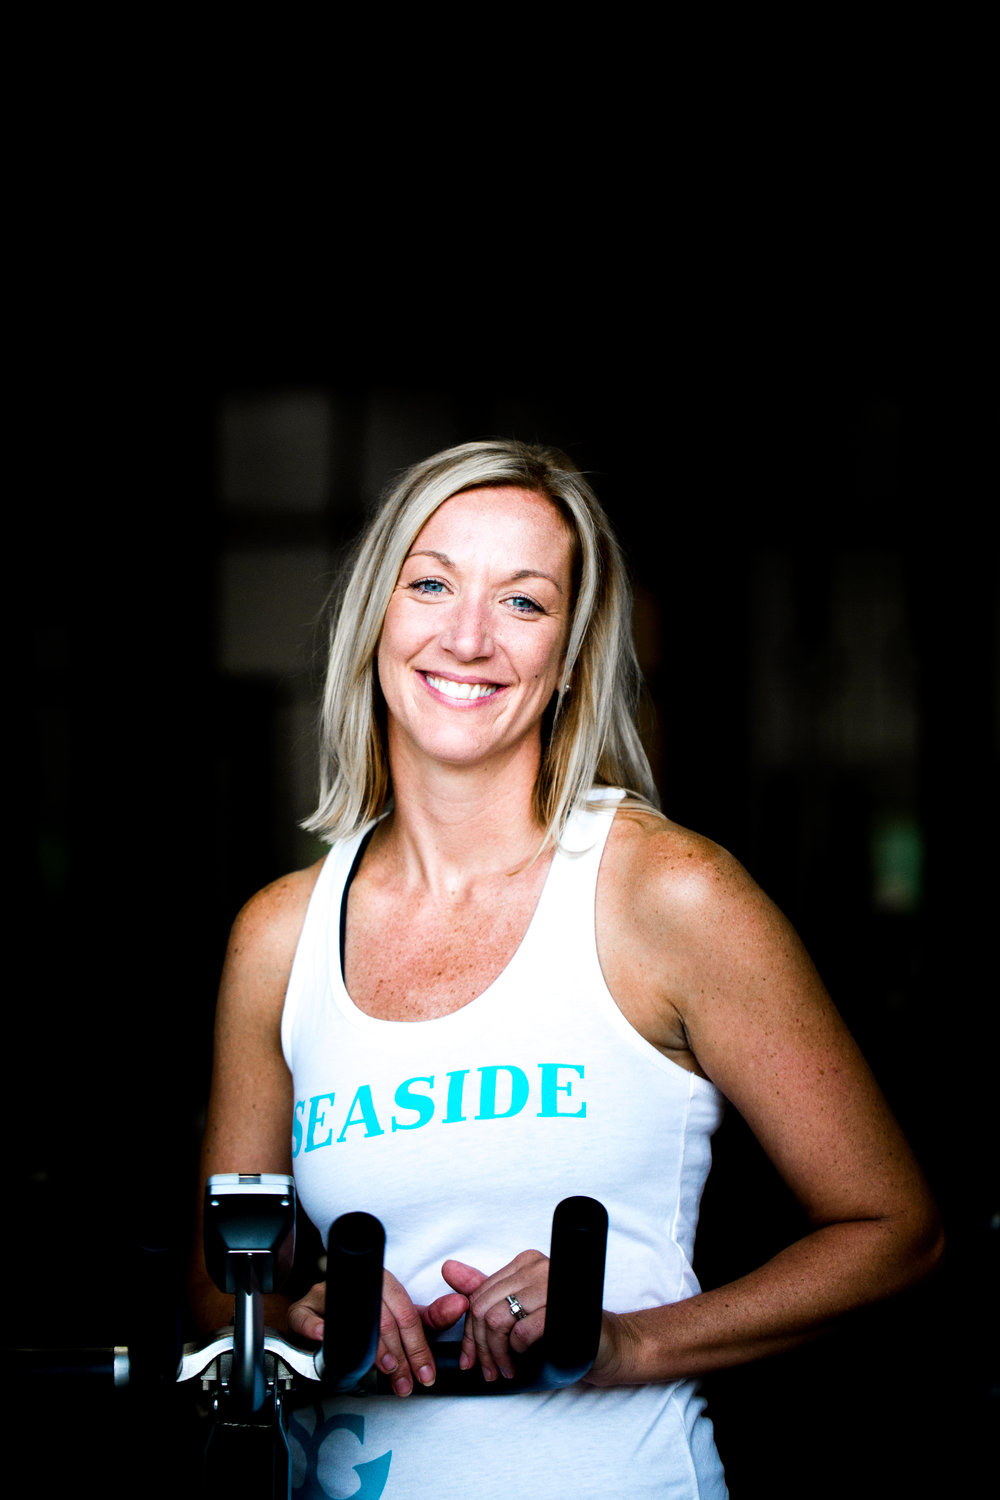 SEASIDE CROSSFIT MARKETING